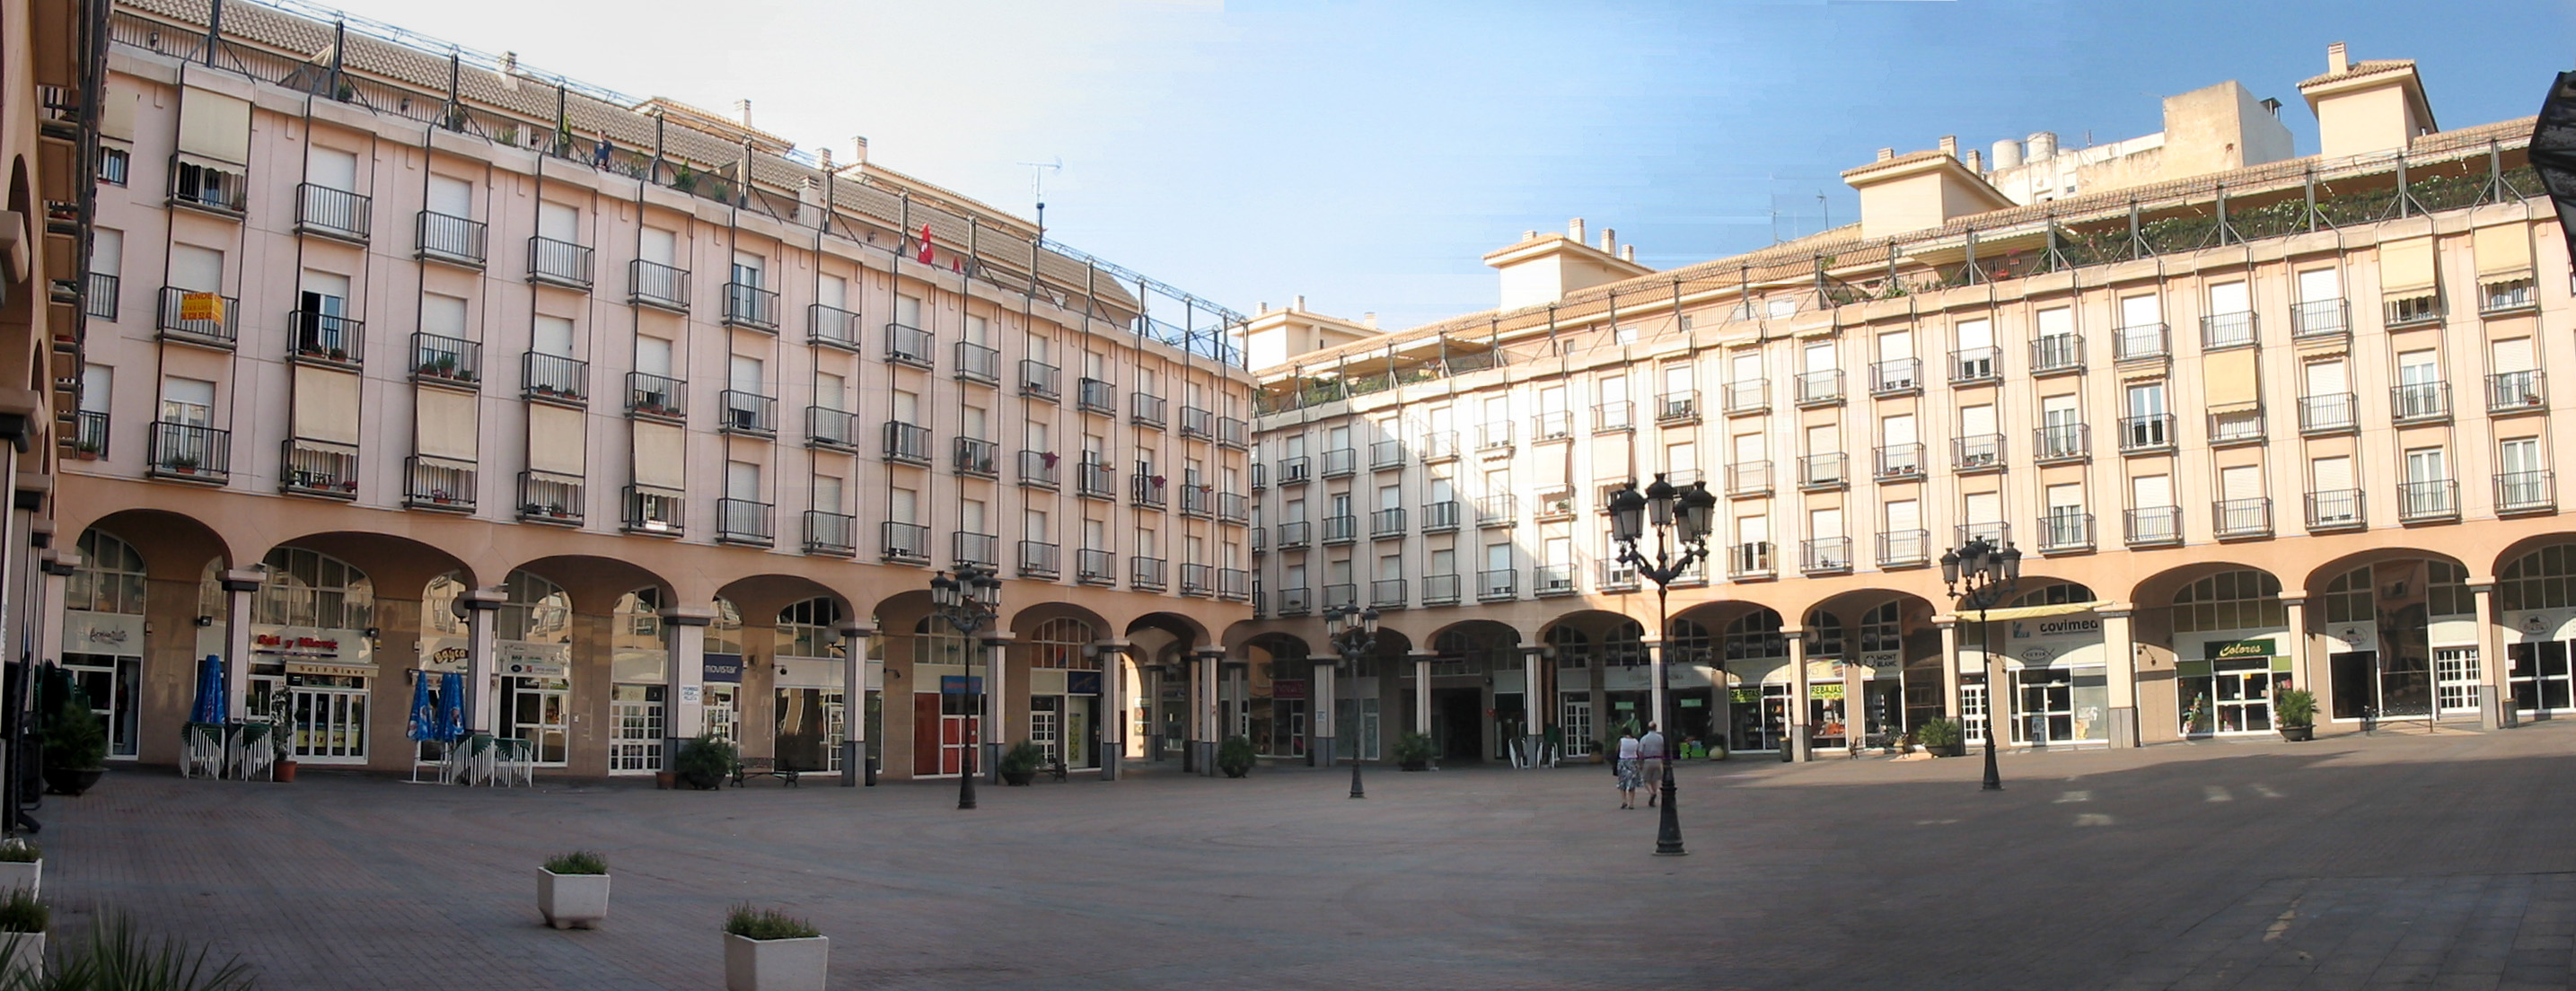 Elda Spain  City new picture : Elda, Spain on Pinterest | Historia, Track and Search